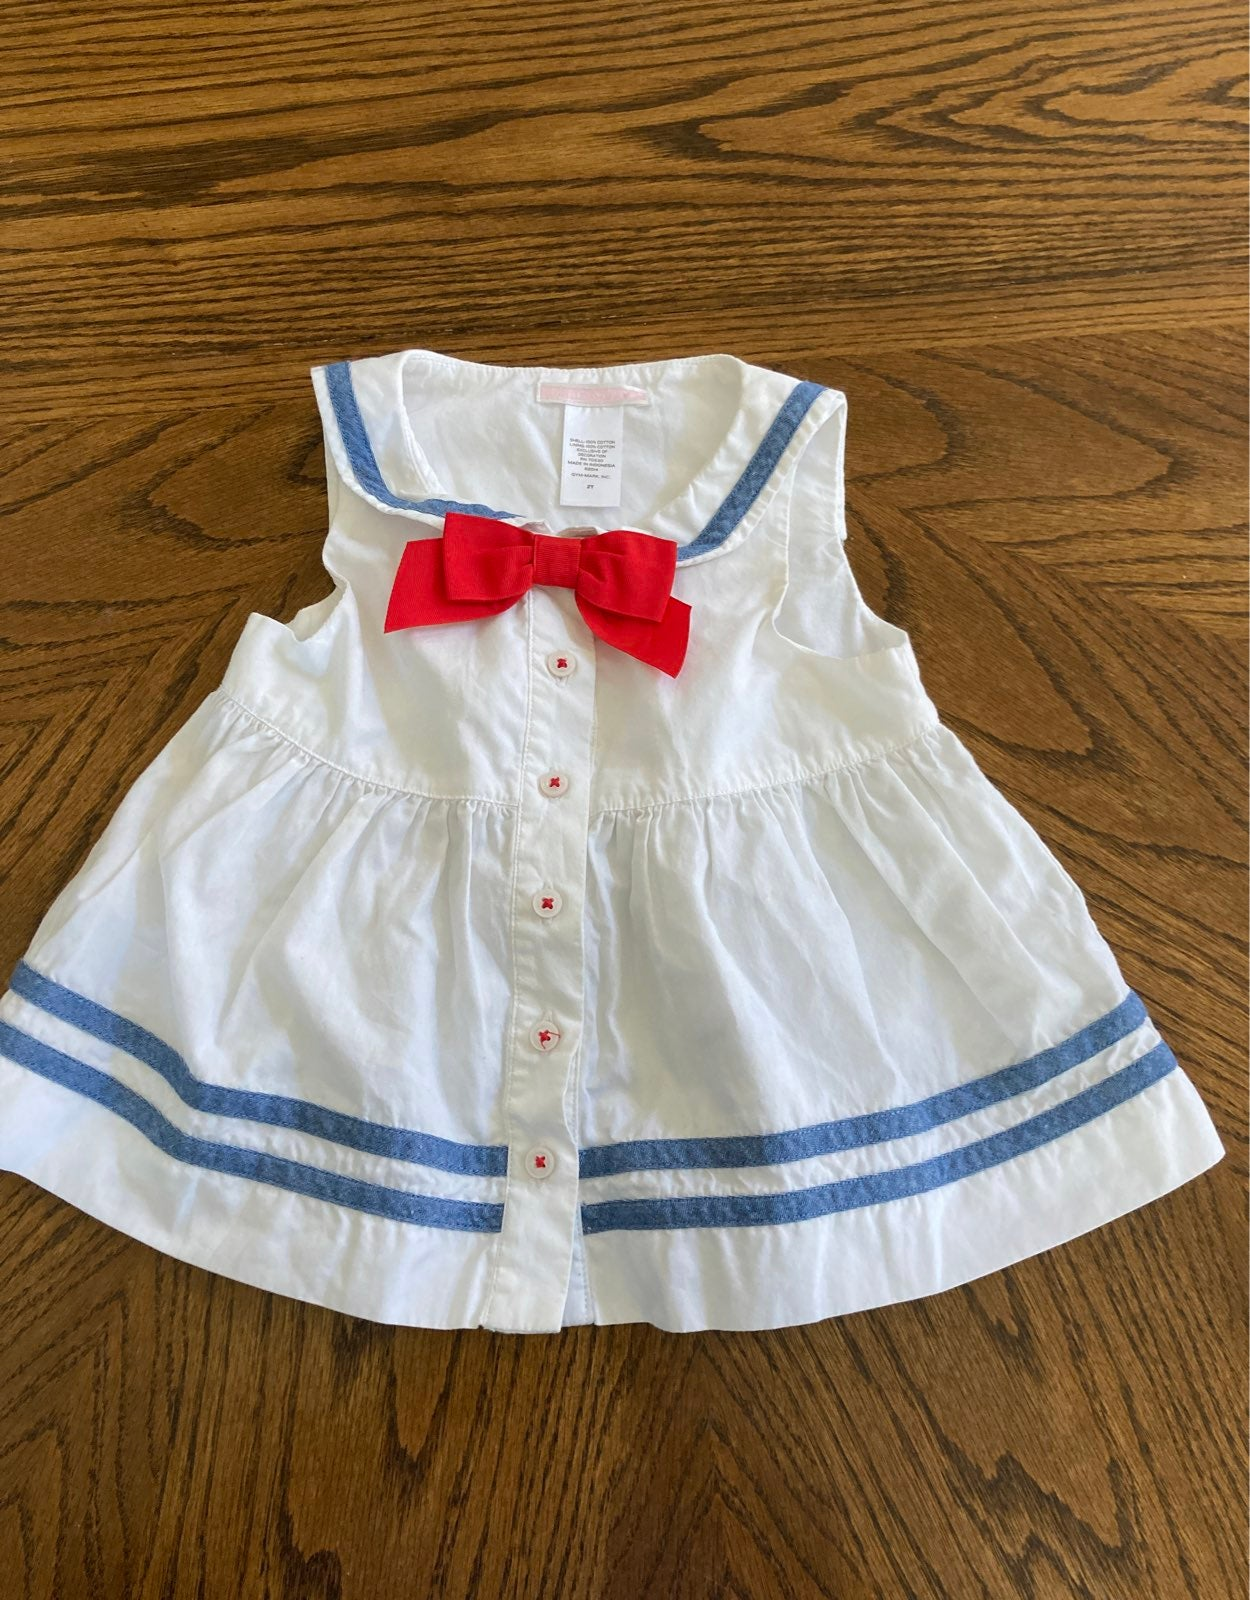 Janie and Jack girls 2t sailor top